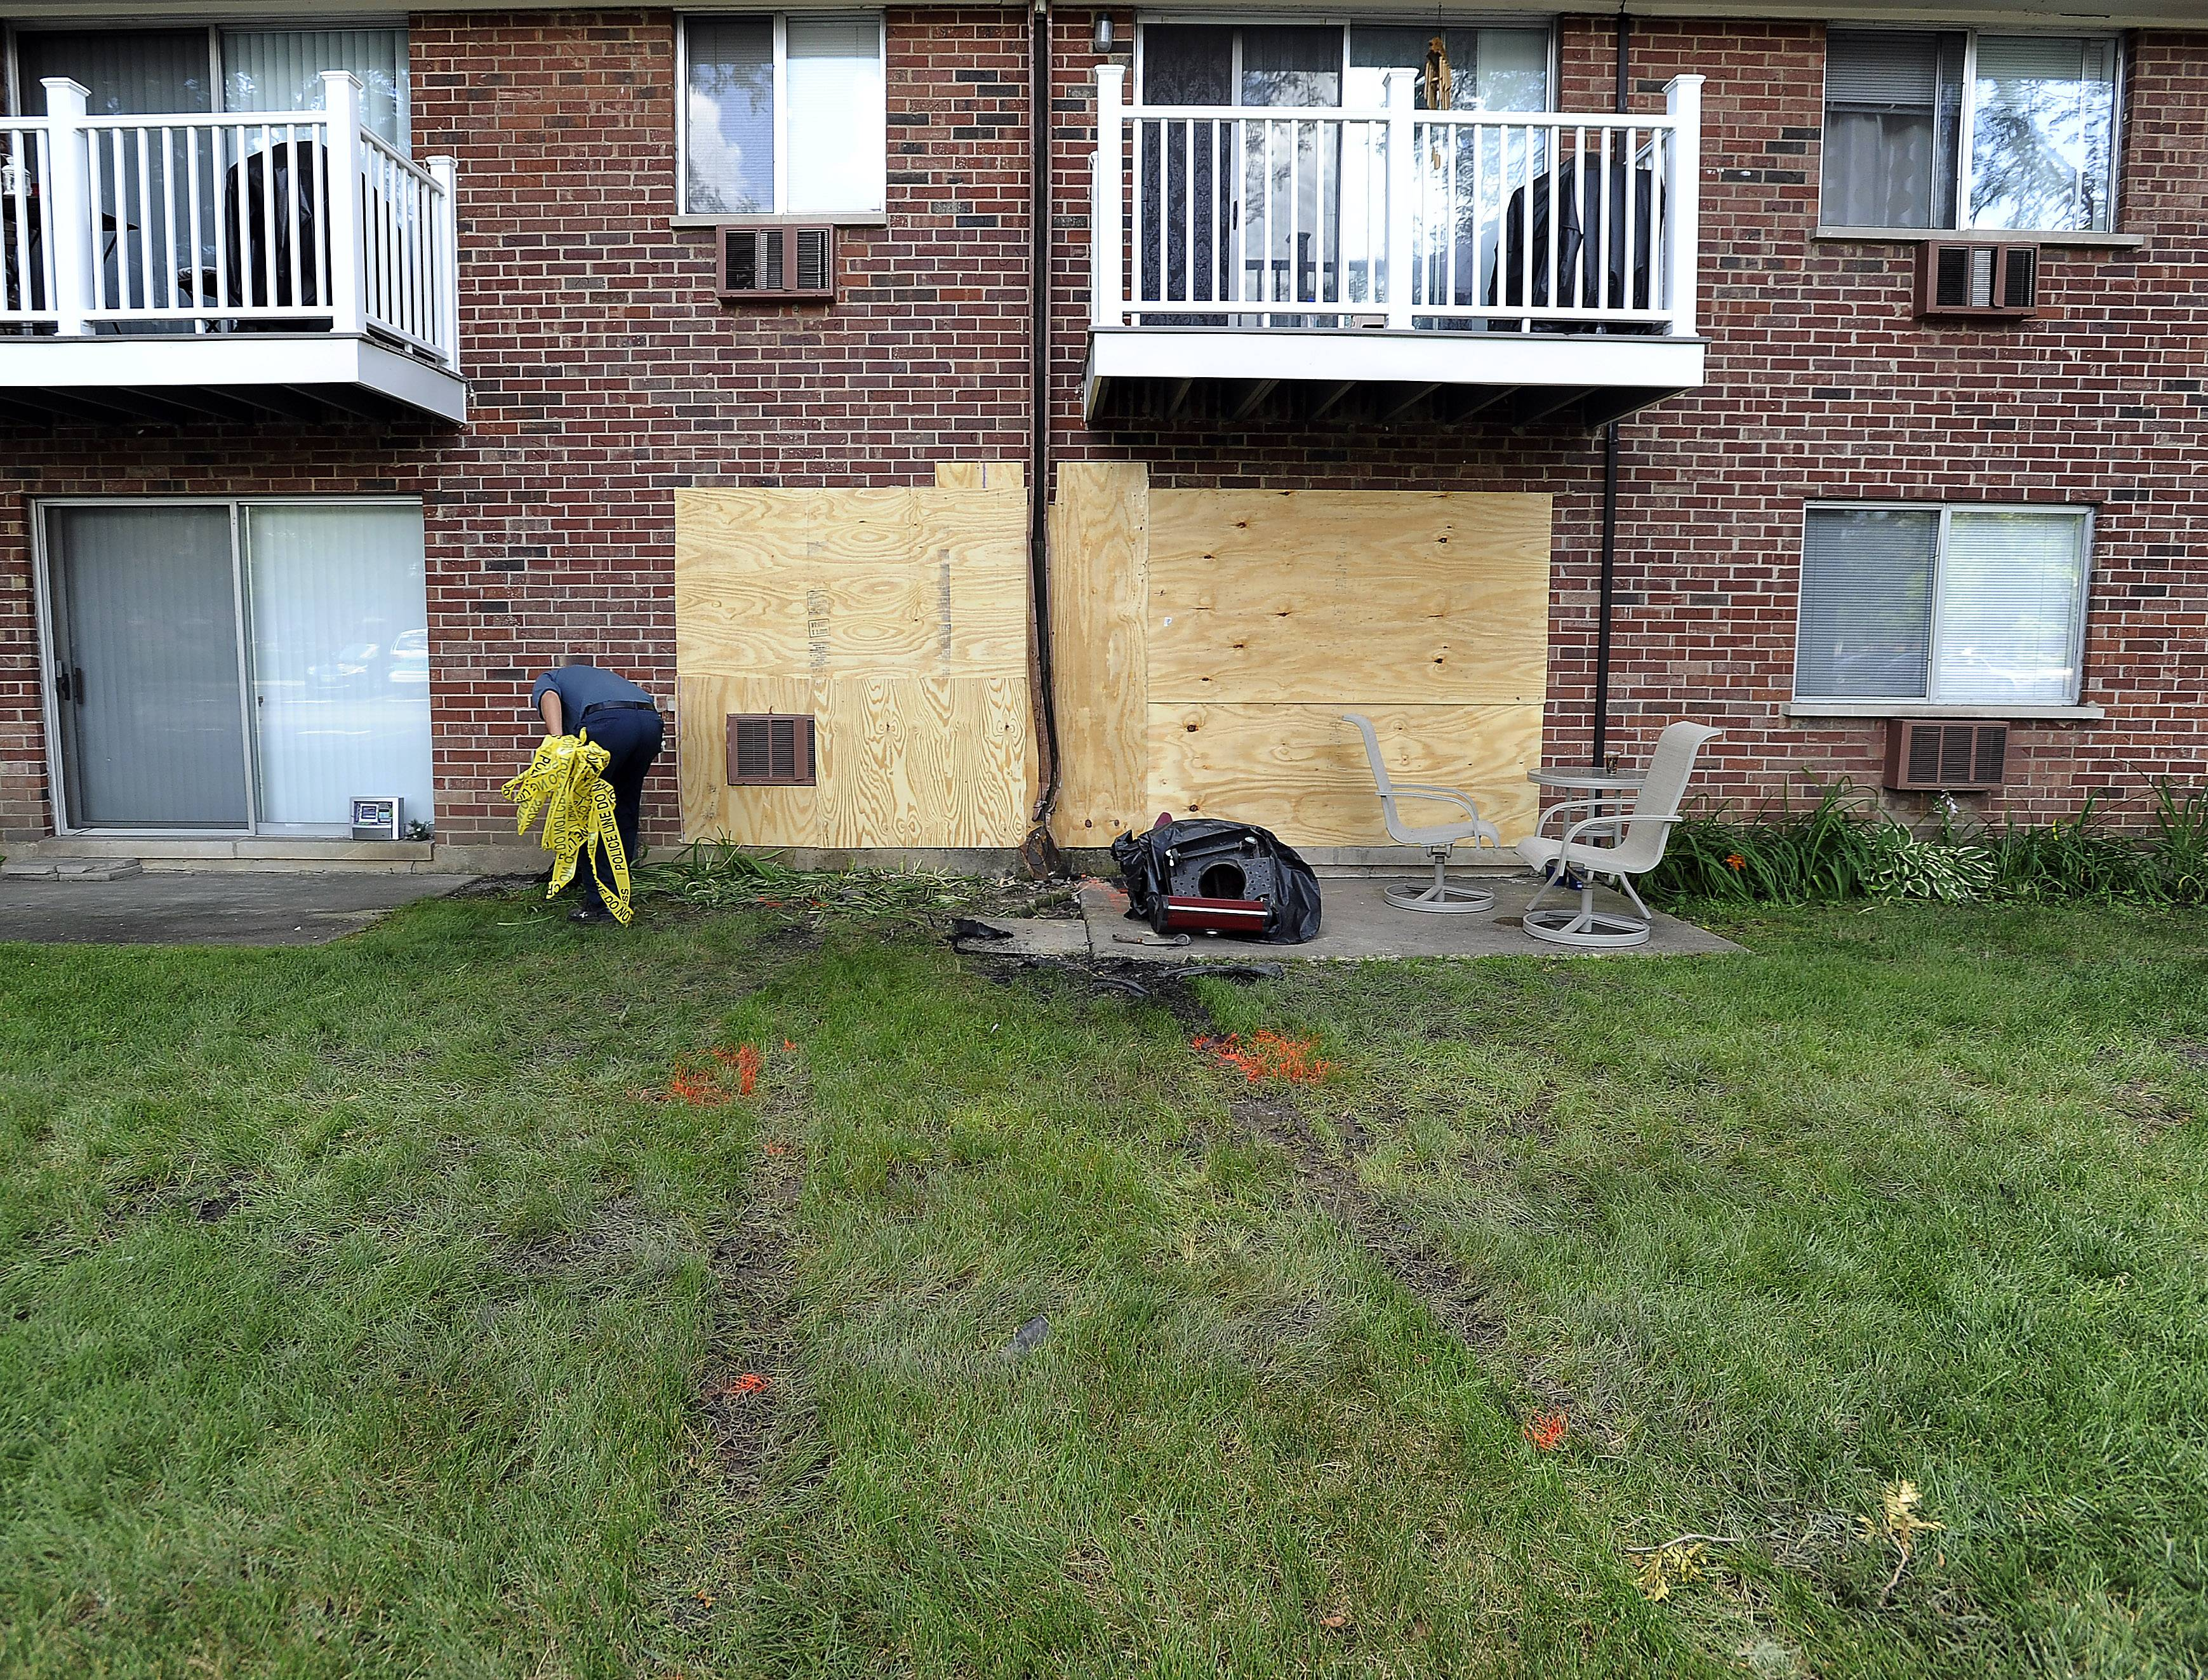 No one inside the apartment building was injured, but the impact caused some structural damage.